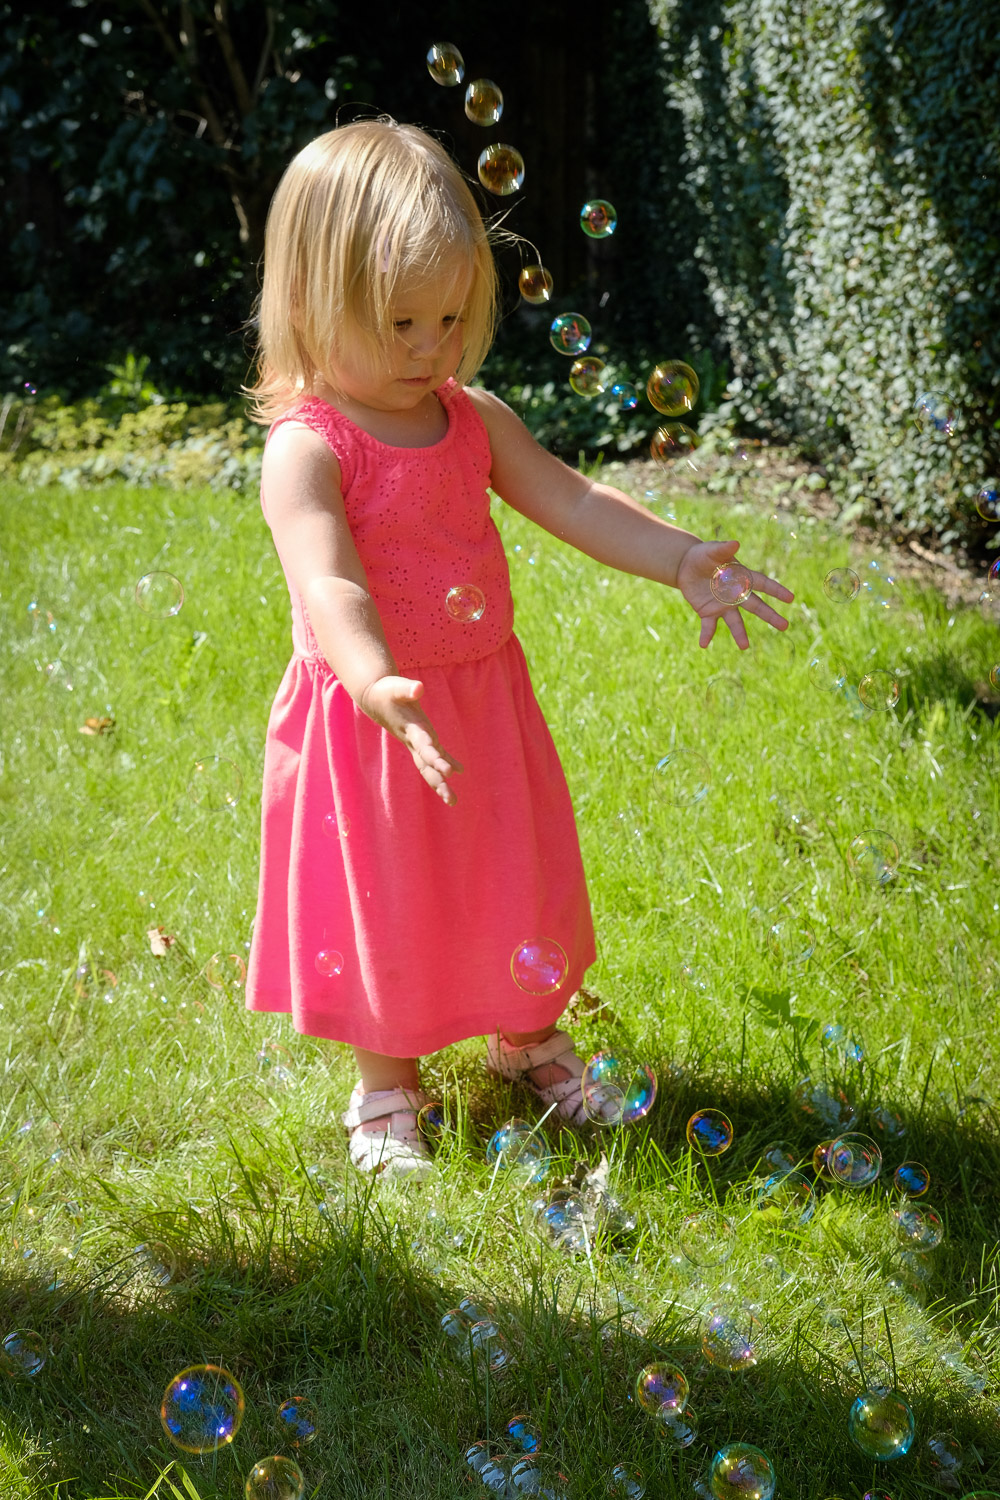 Documentary family photo of a girl toddler bursting bubbles on a sunny day, wearing a bright dress.